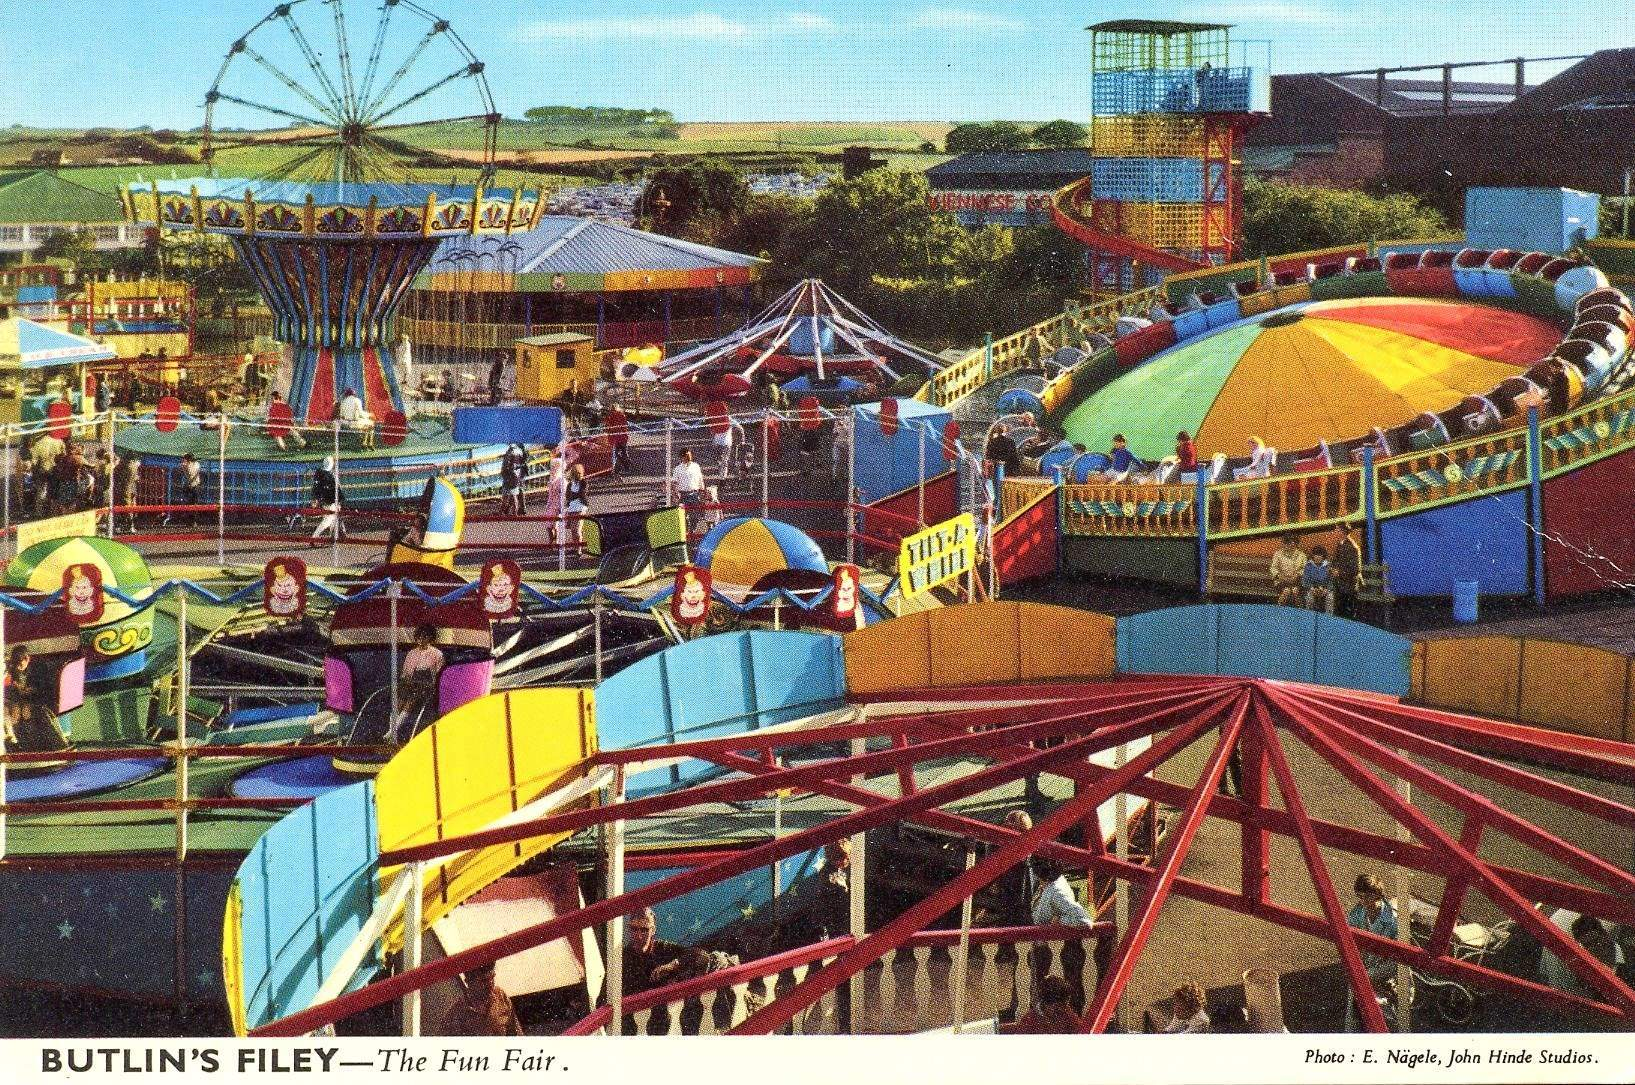 Butlins Filey - The Fun Fair (postcard, late 1960s)